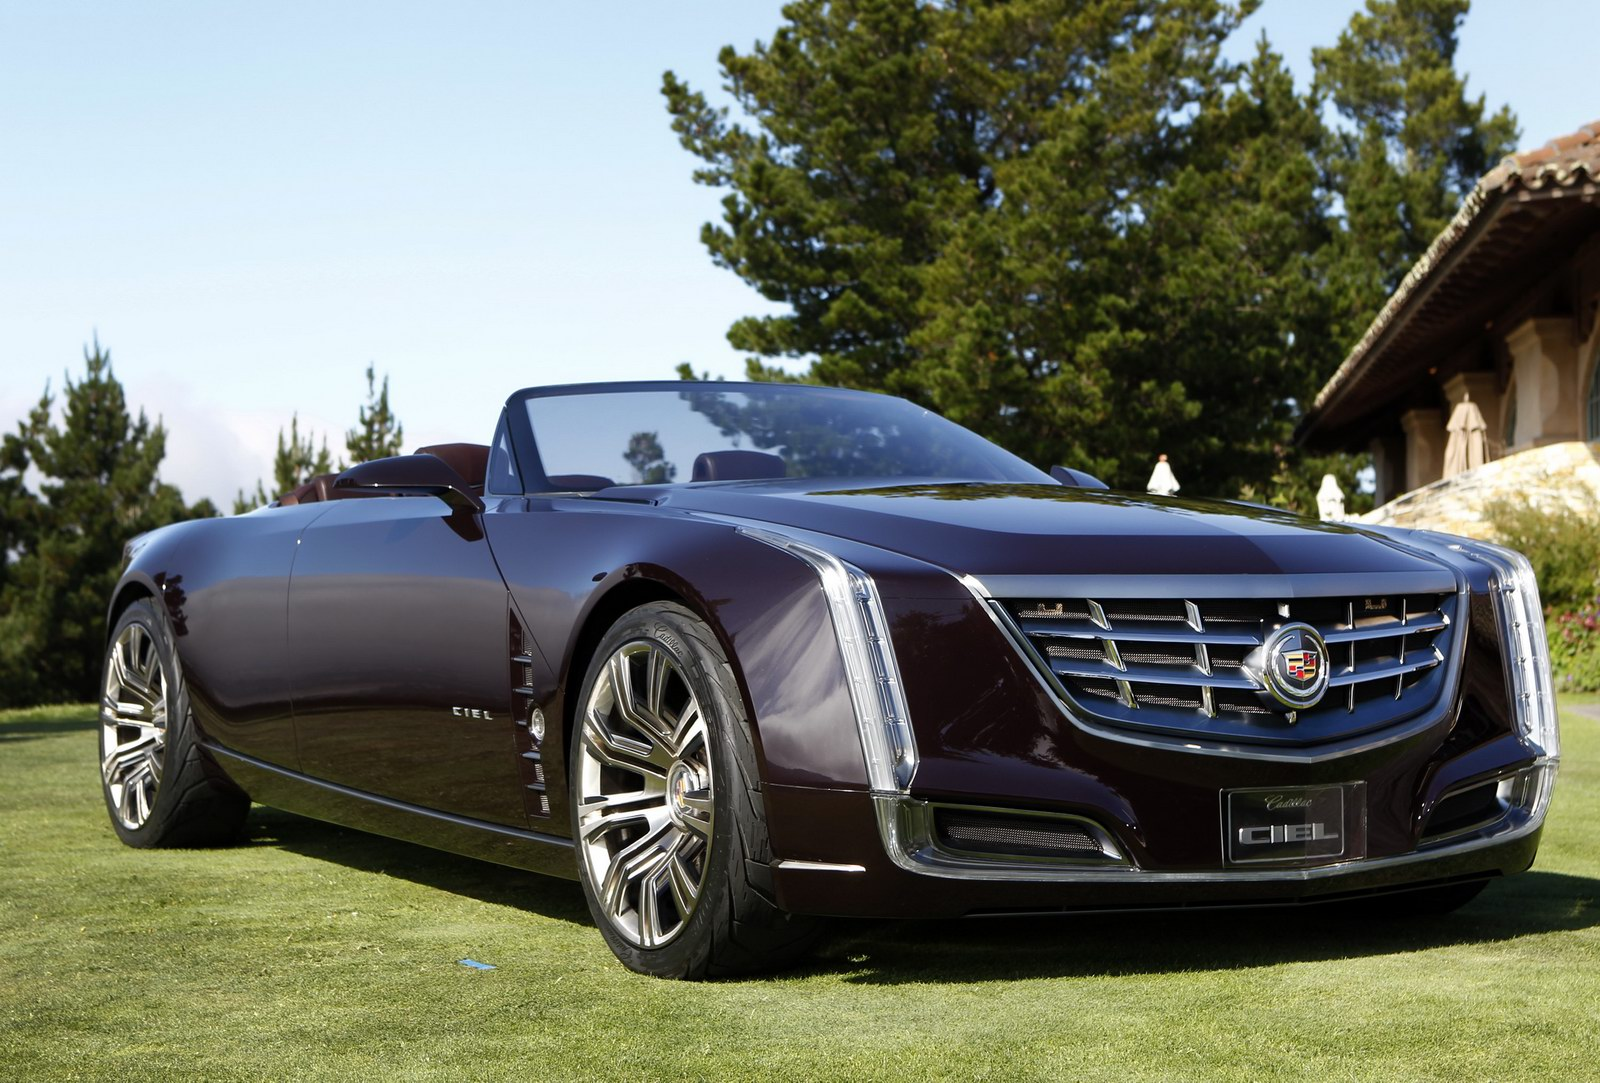 2011 cadillac ciel 4 door convertible concept auto car. Black Bedroom Furniture Sets. Home Design Ideas